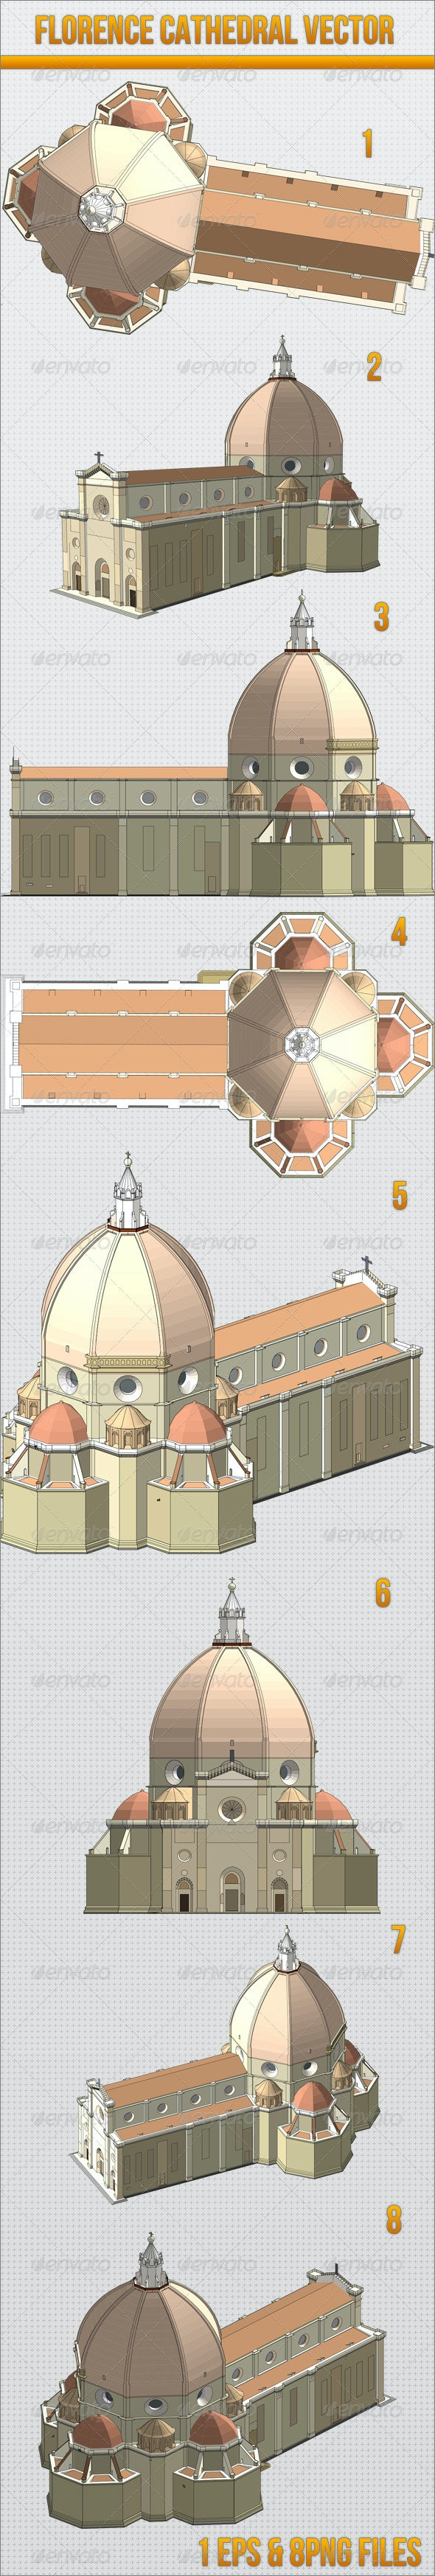 Duomo Florence Cathedral Vector - Buildings Objects